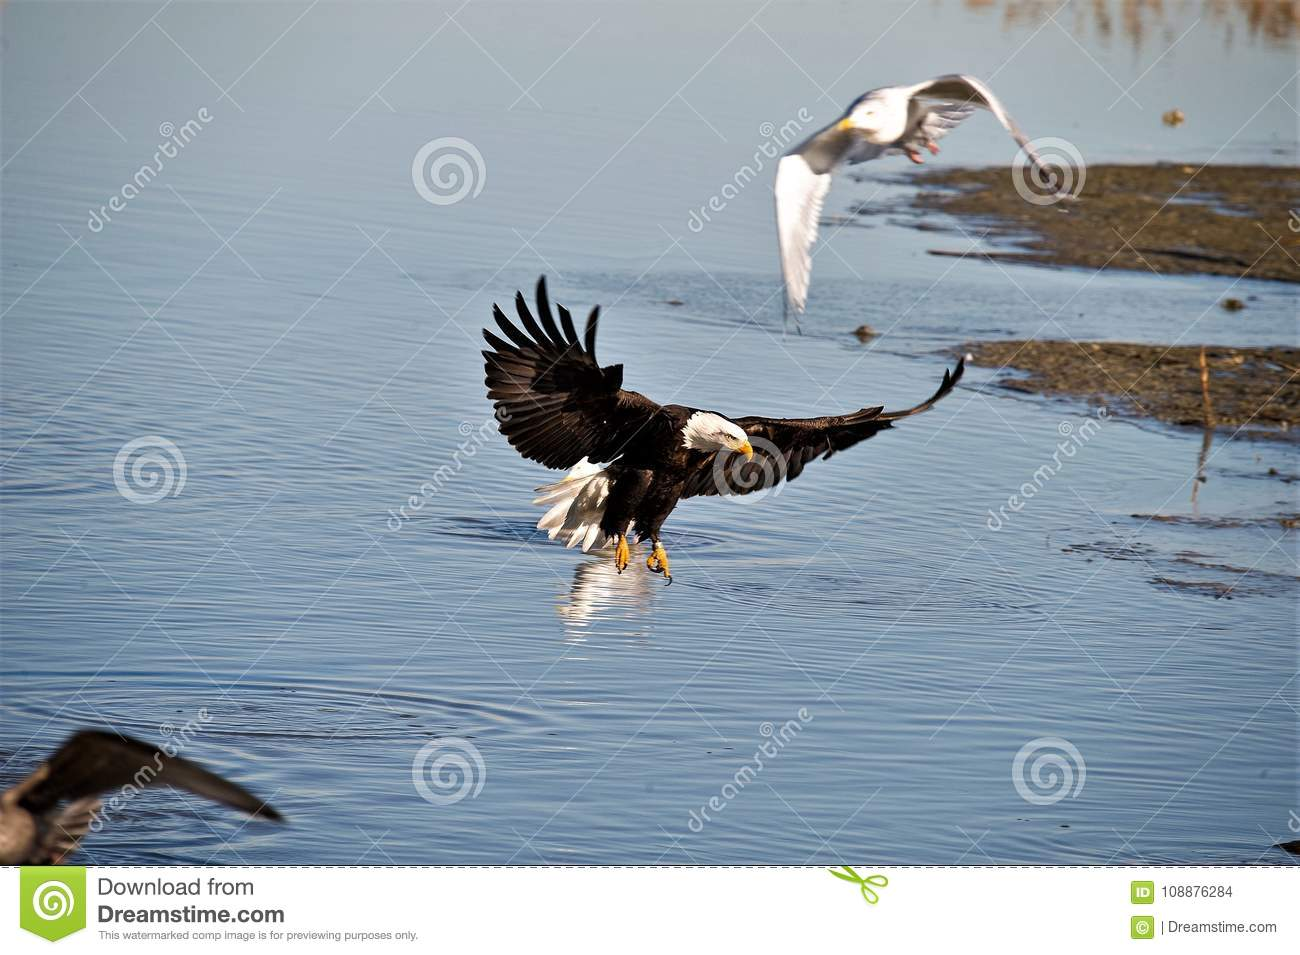 Bald Eagle starting to land in the shallowes